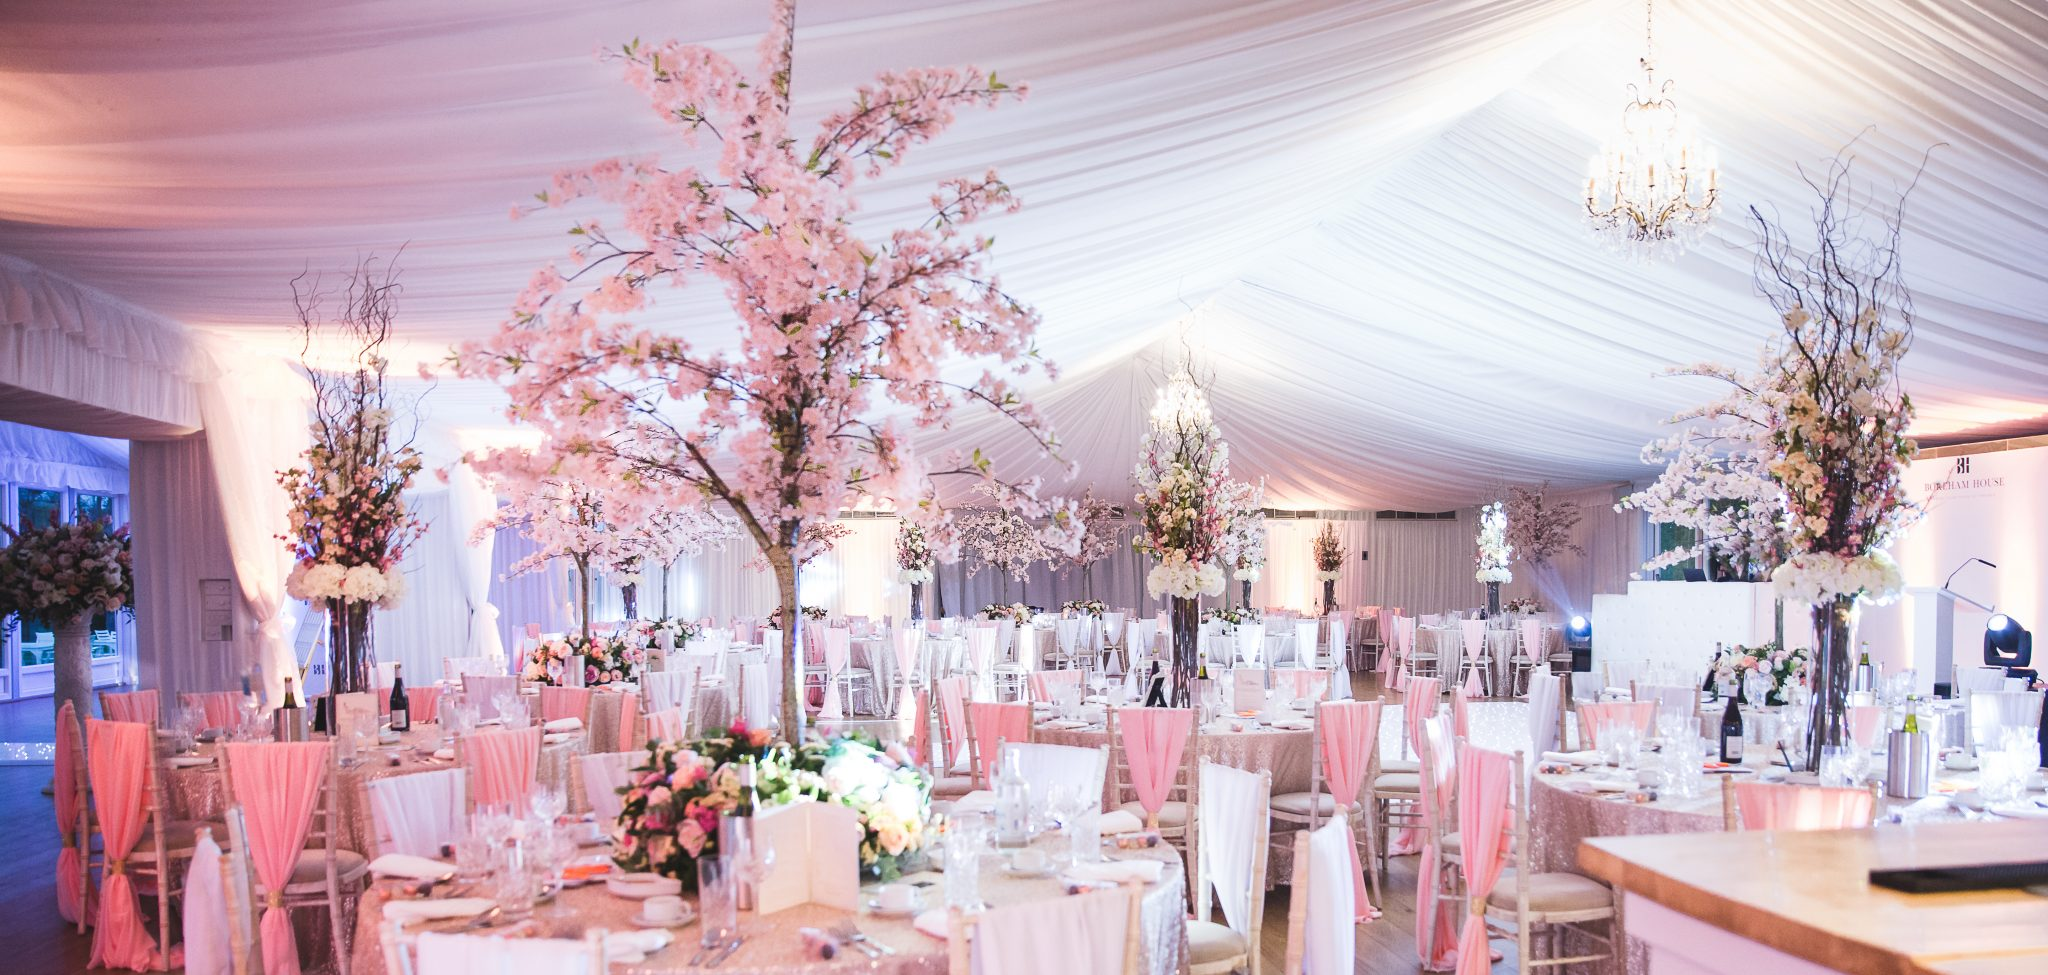 Asian Wedding Caterers Catering In Boreham House